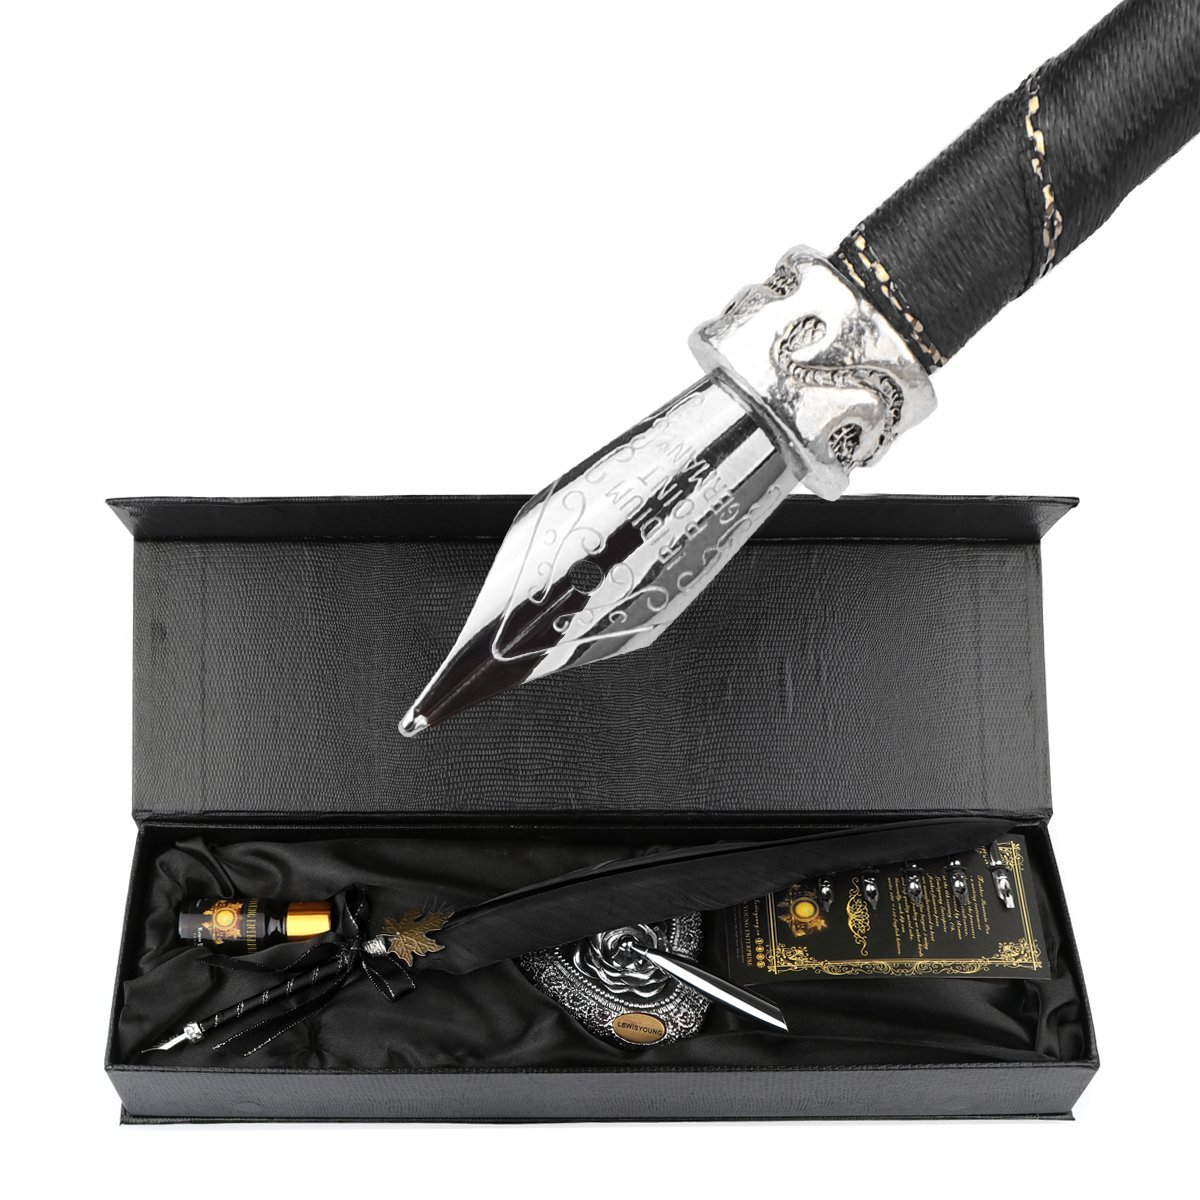 Lemonbest Vintage Writing Quill Feather Pen, Antique True Feather Metal Calligraphy Pen, Feather Dip Pen Set with Elegant Carving Pen Stand Ink Bottle 5pcs Nibs (Black)